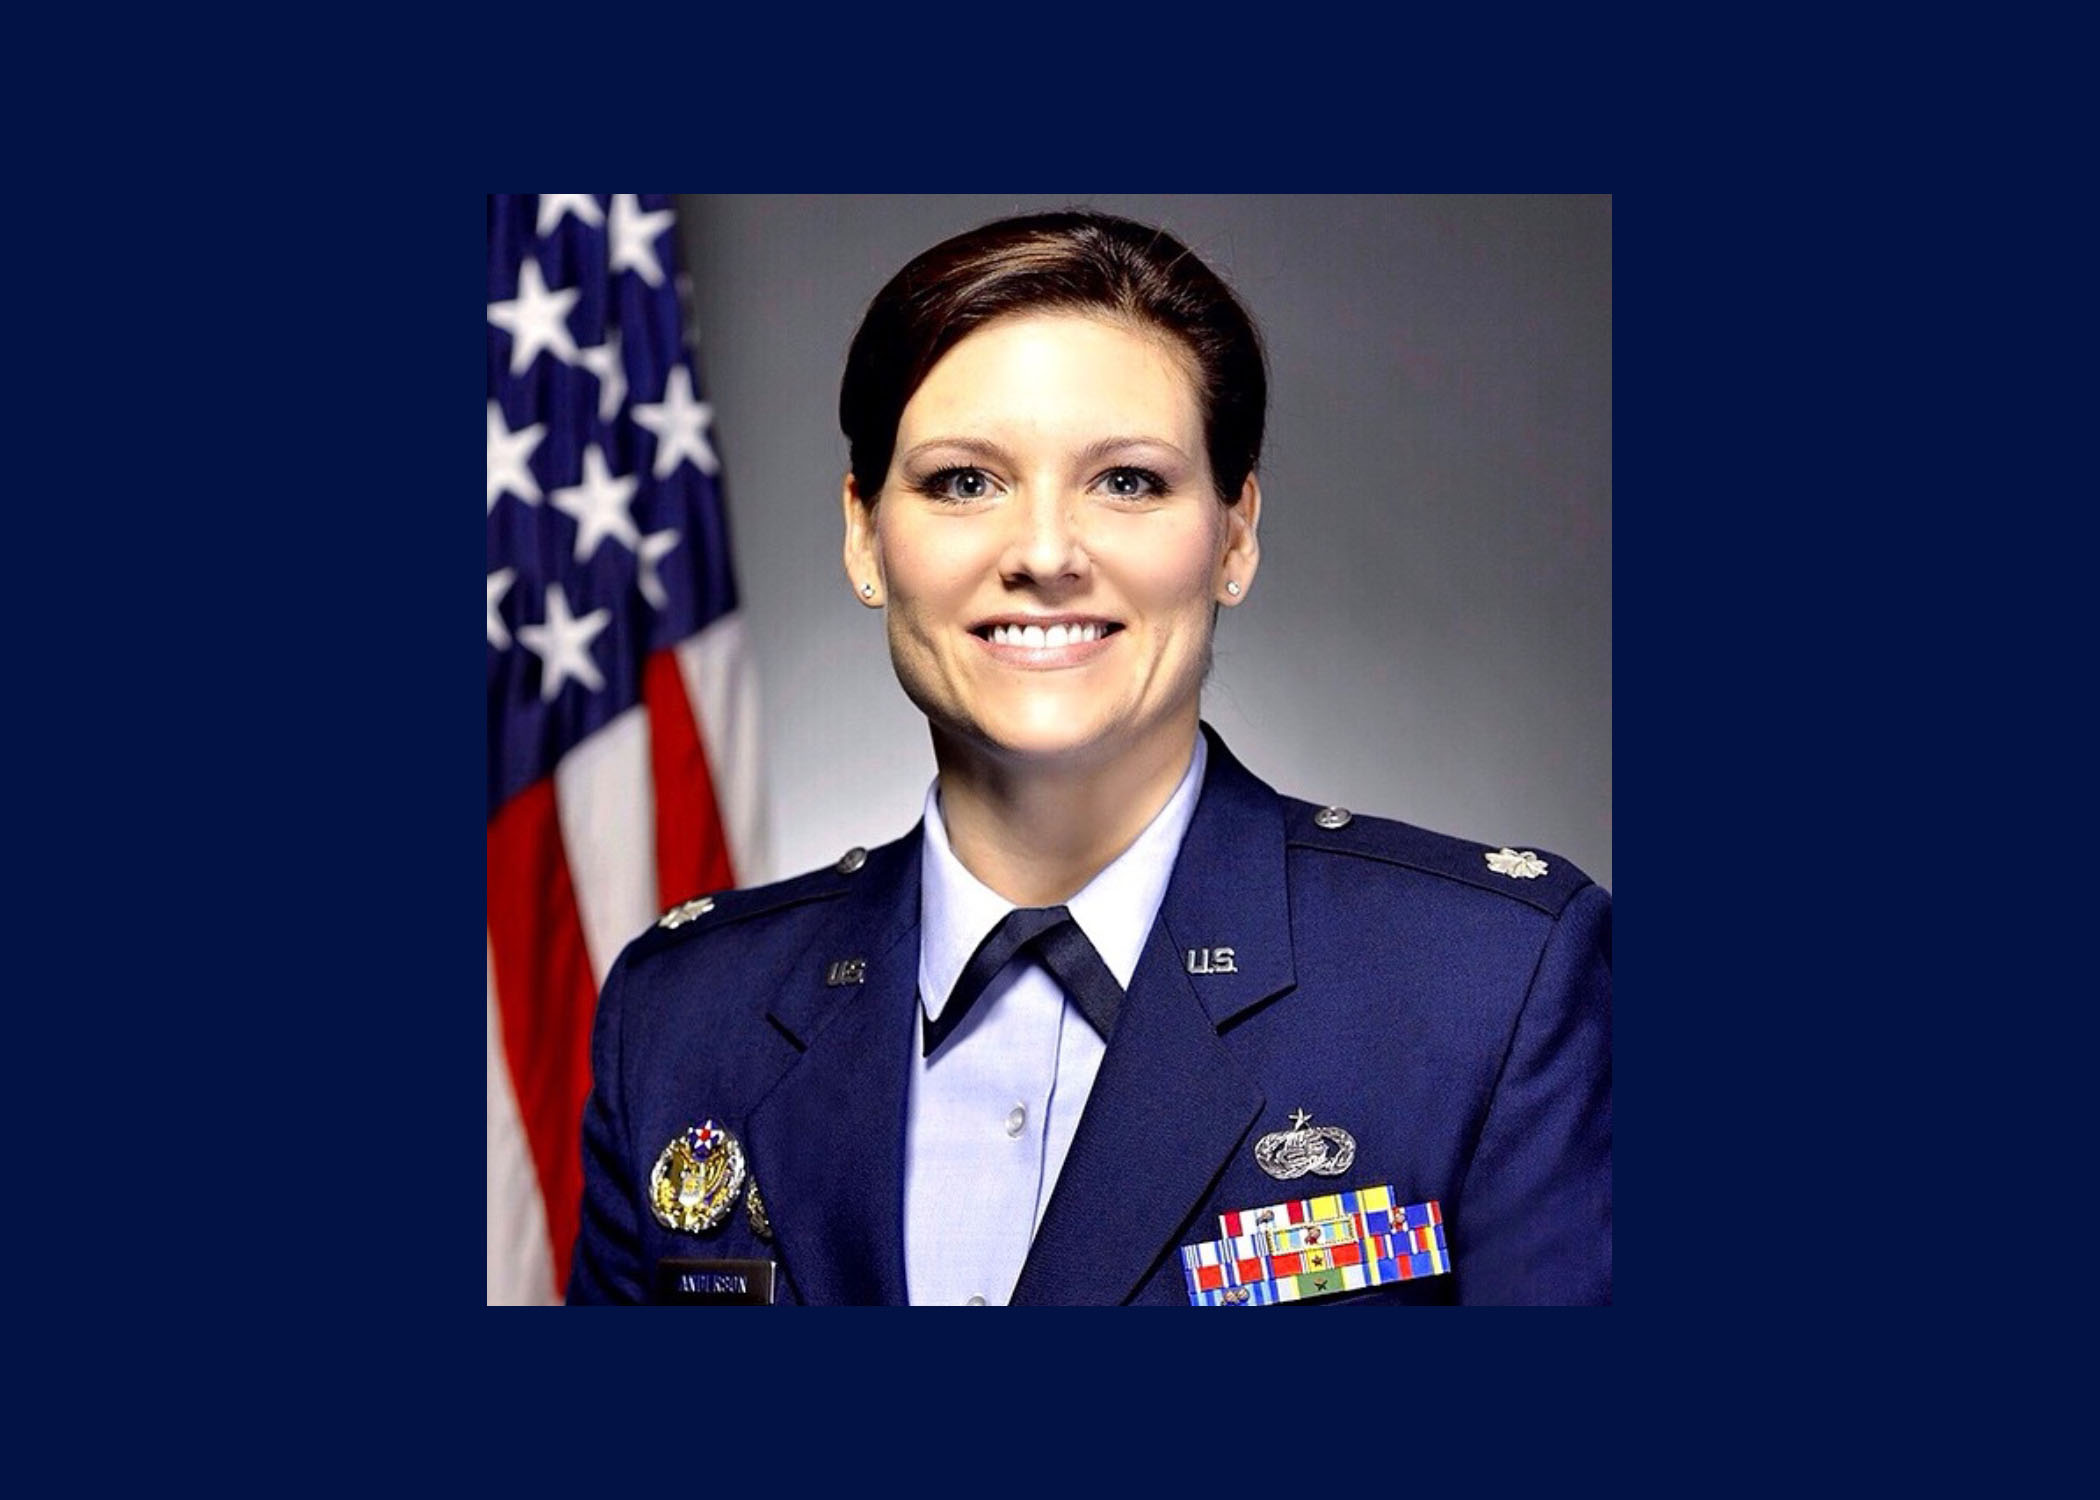 Local Air Force Reservist and Park & Rec Board member announces run for Trussville City Council